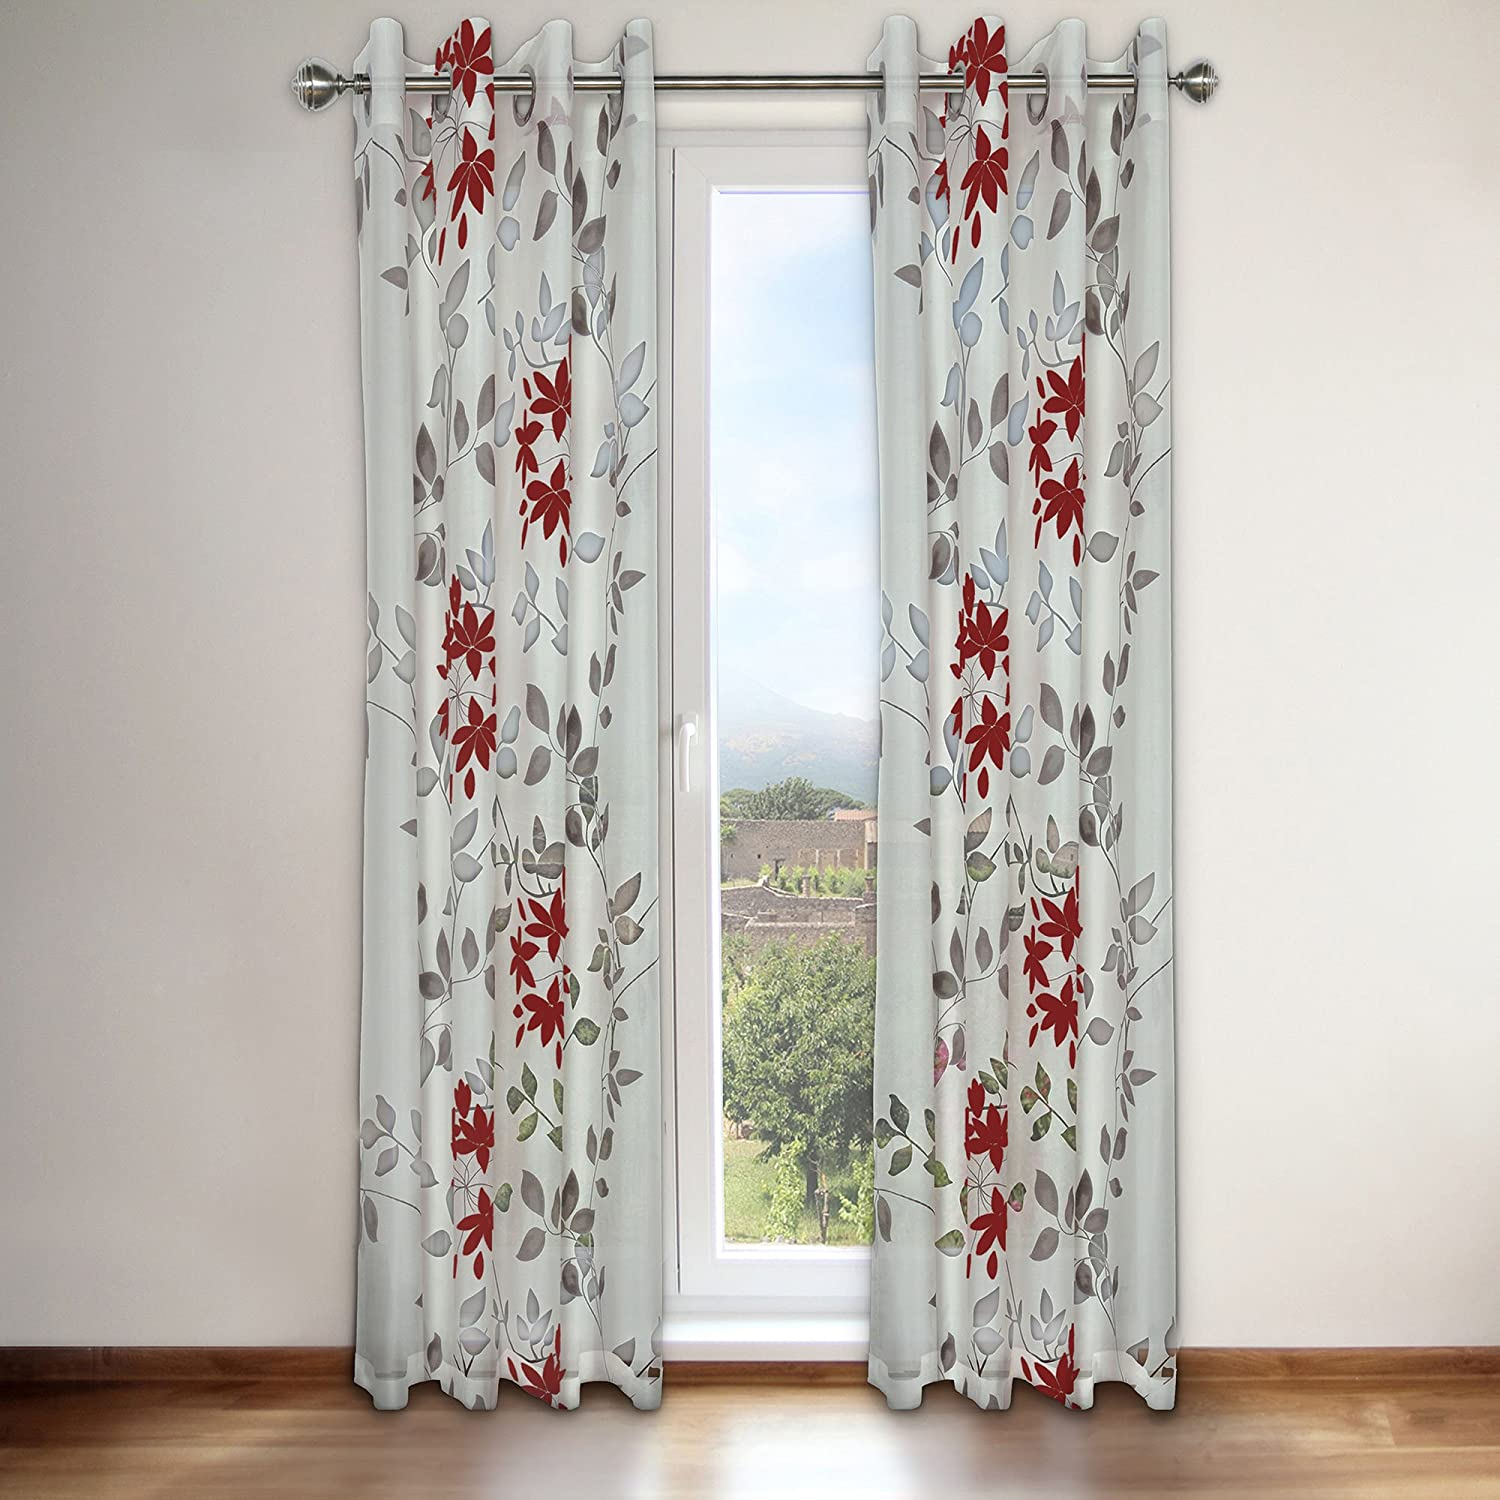 Famous Home Fashions Famous Home Reni Red Window Curtain Panel, 54' x 95' 54 x 95 920226